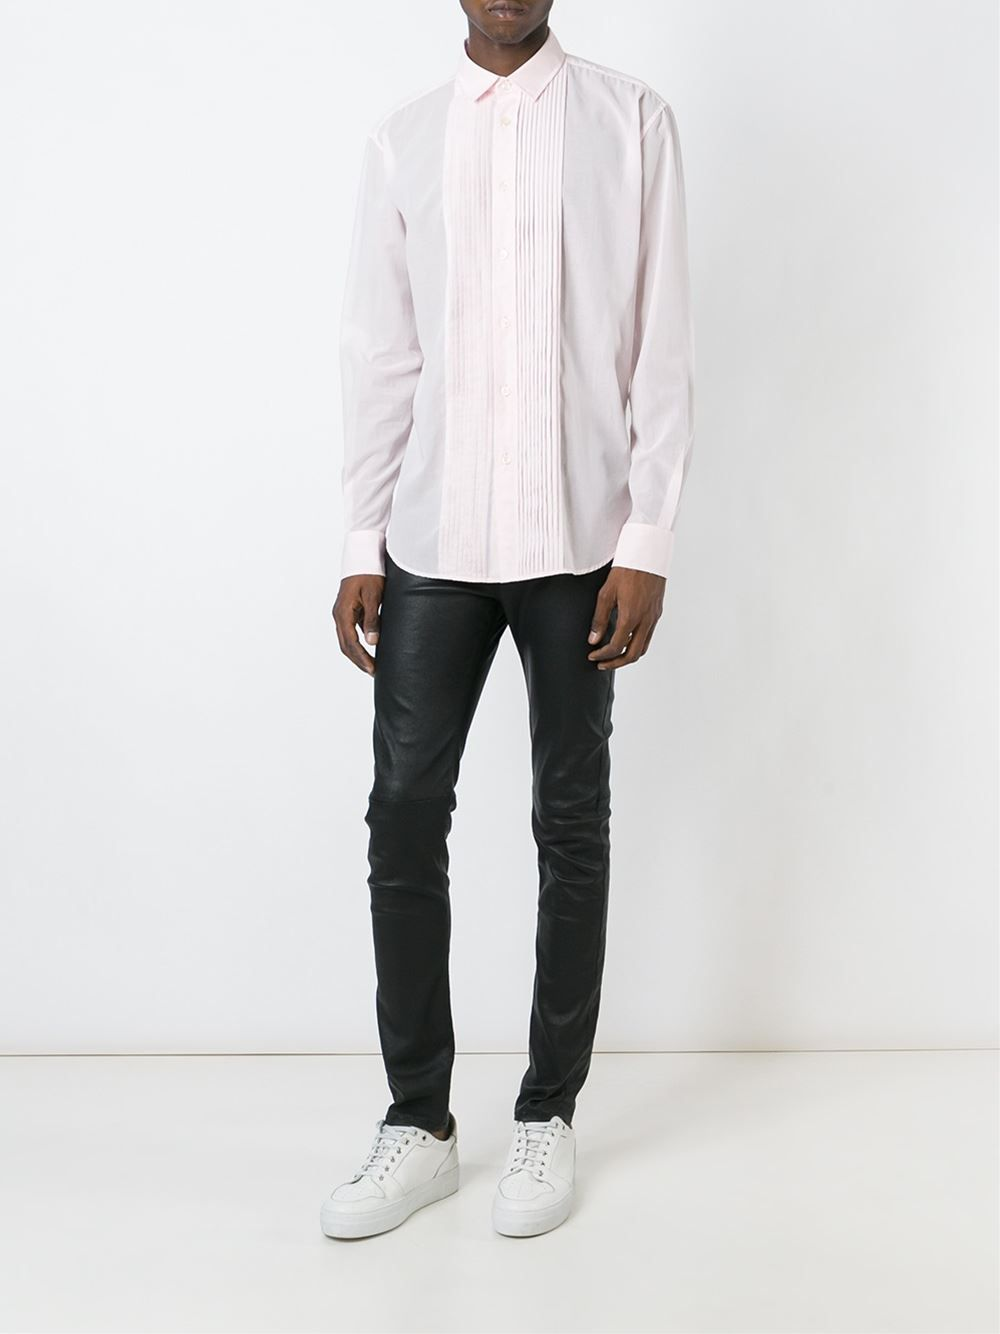 Saint Laurent pleated panel shirt